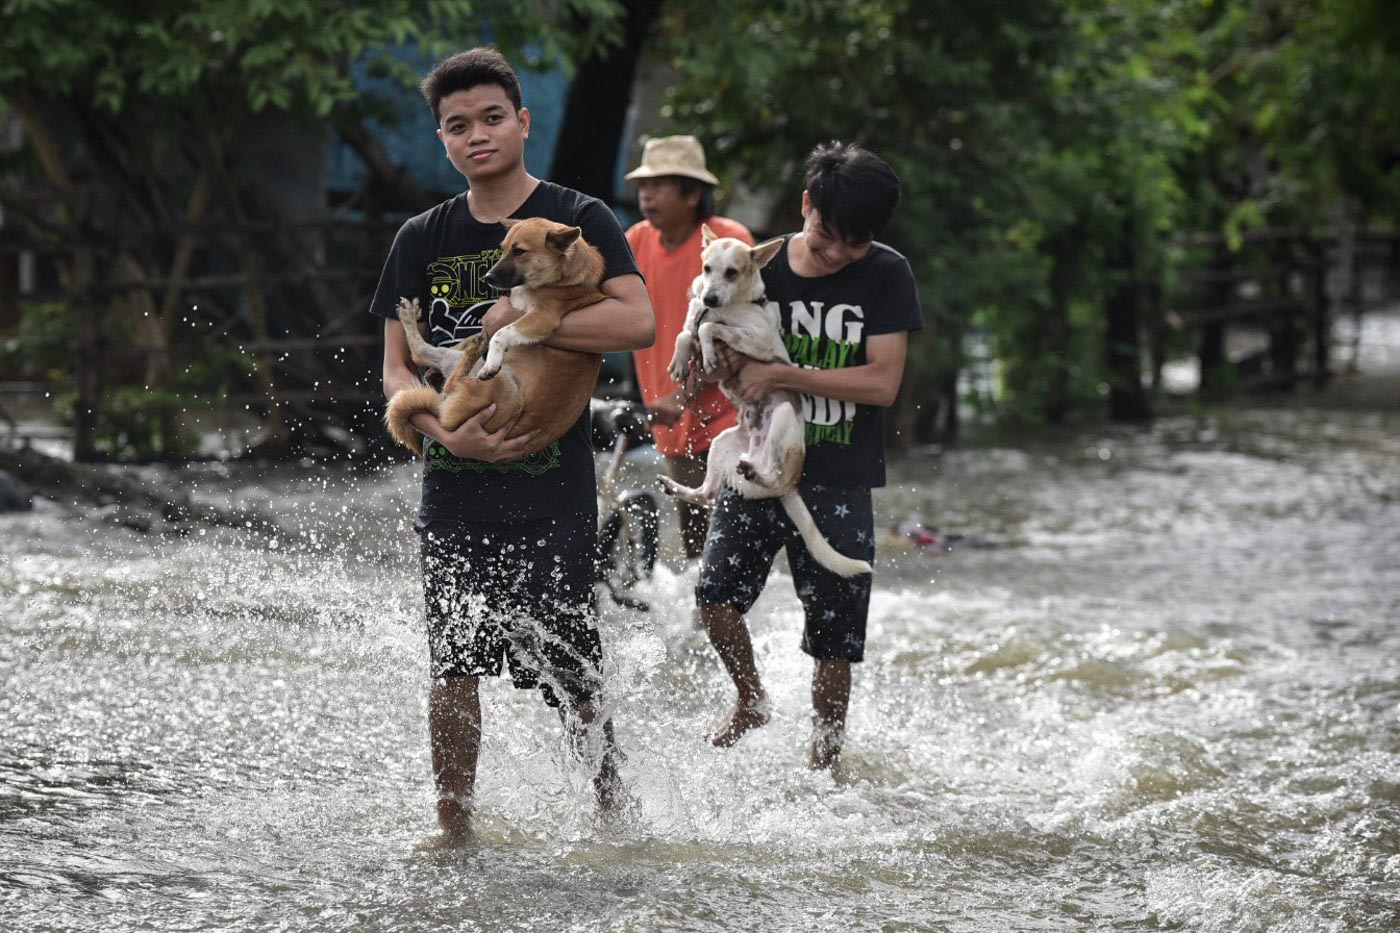 SPARING NO ONE. Not just farmers but animals too were affected by the flooding.